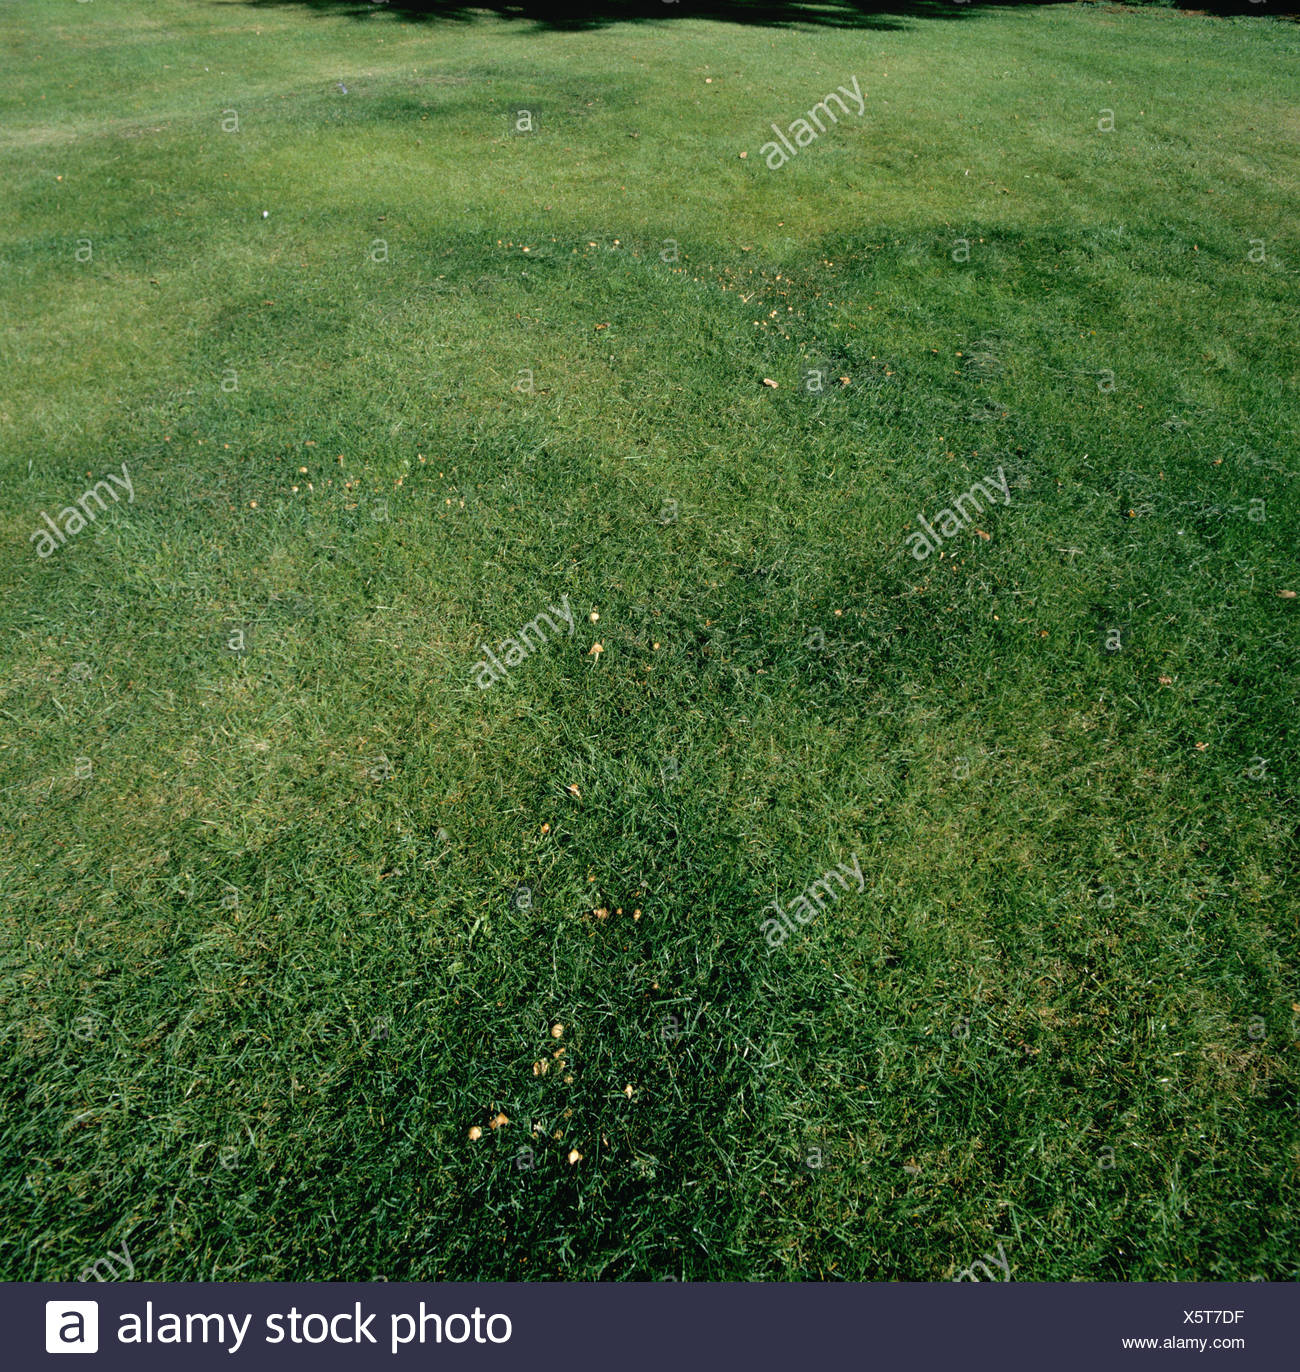 Fairy rings (Marasmius oreades) in lawn at Reading University - Stock Image